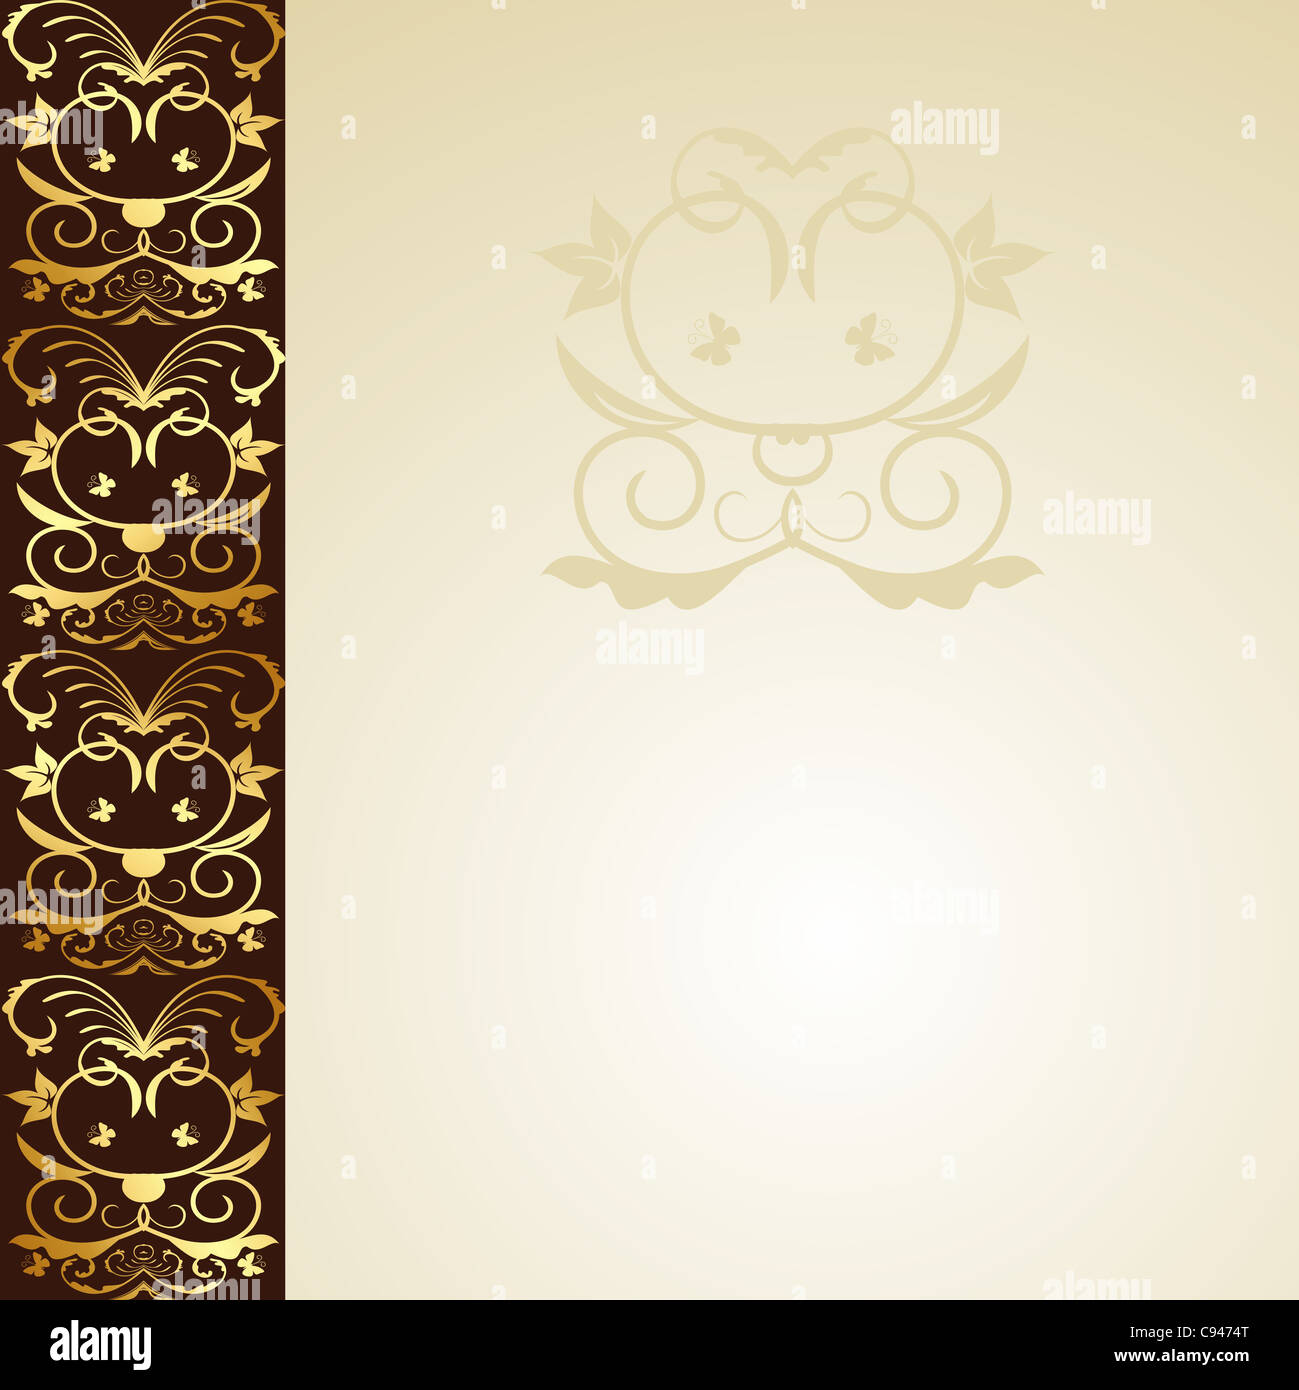 Illustration floral background for design wedding card ...